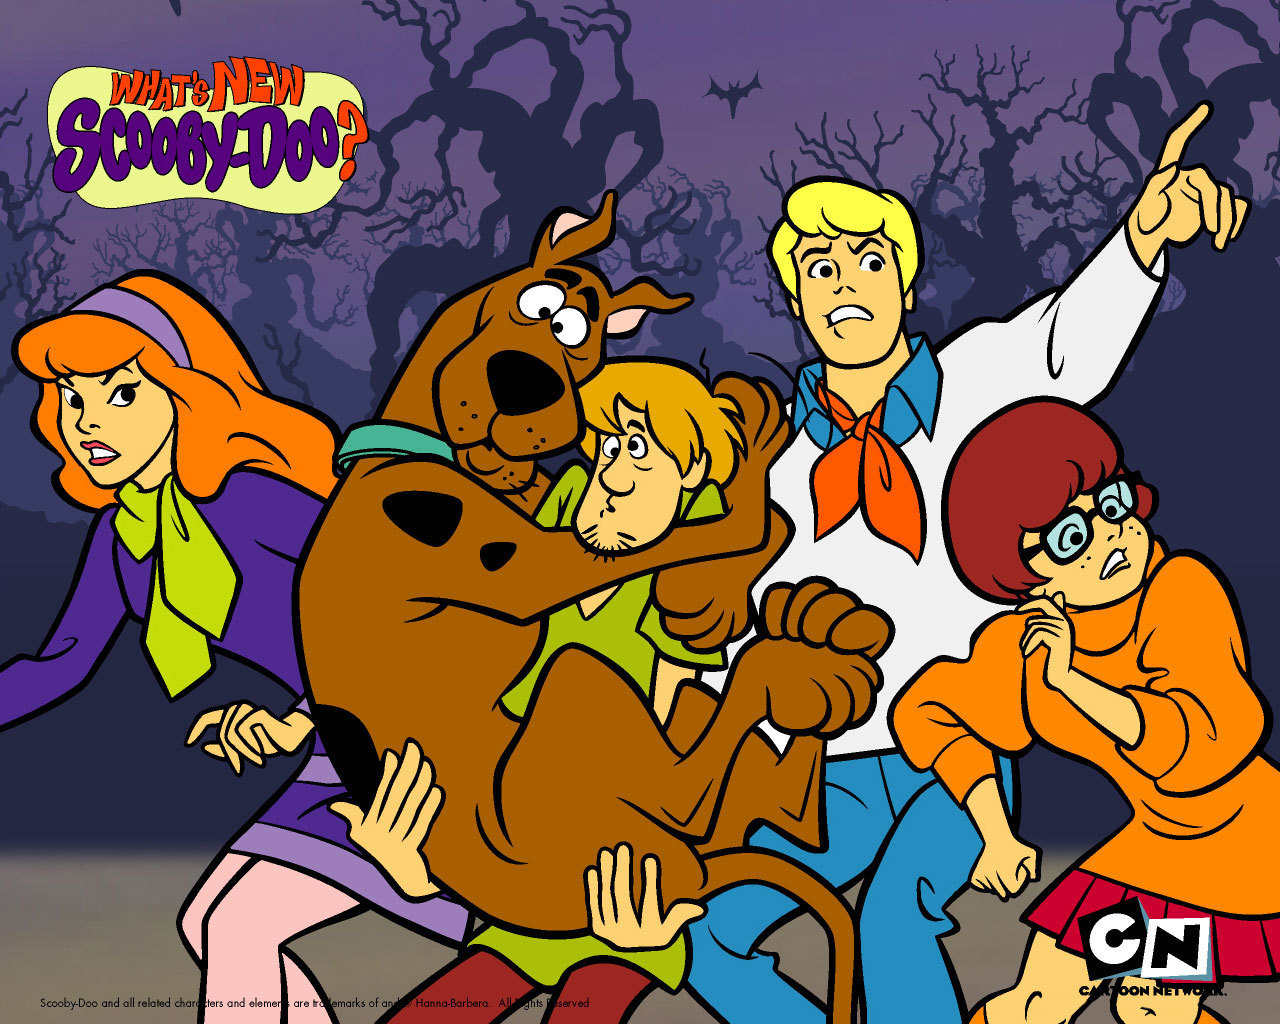 Scooby-Doo Family Cartoon Wallpaper Free Downlaod Wallpaper